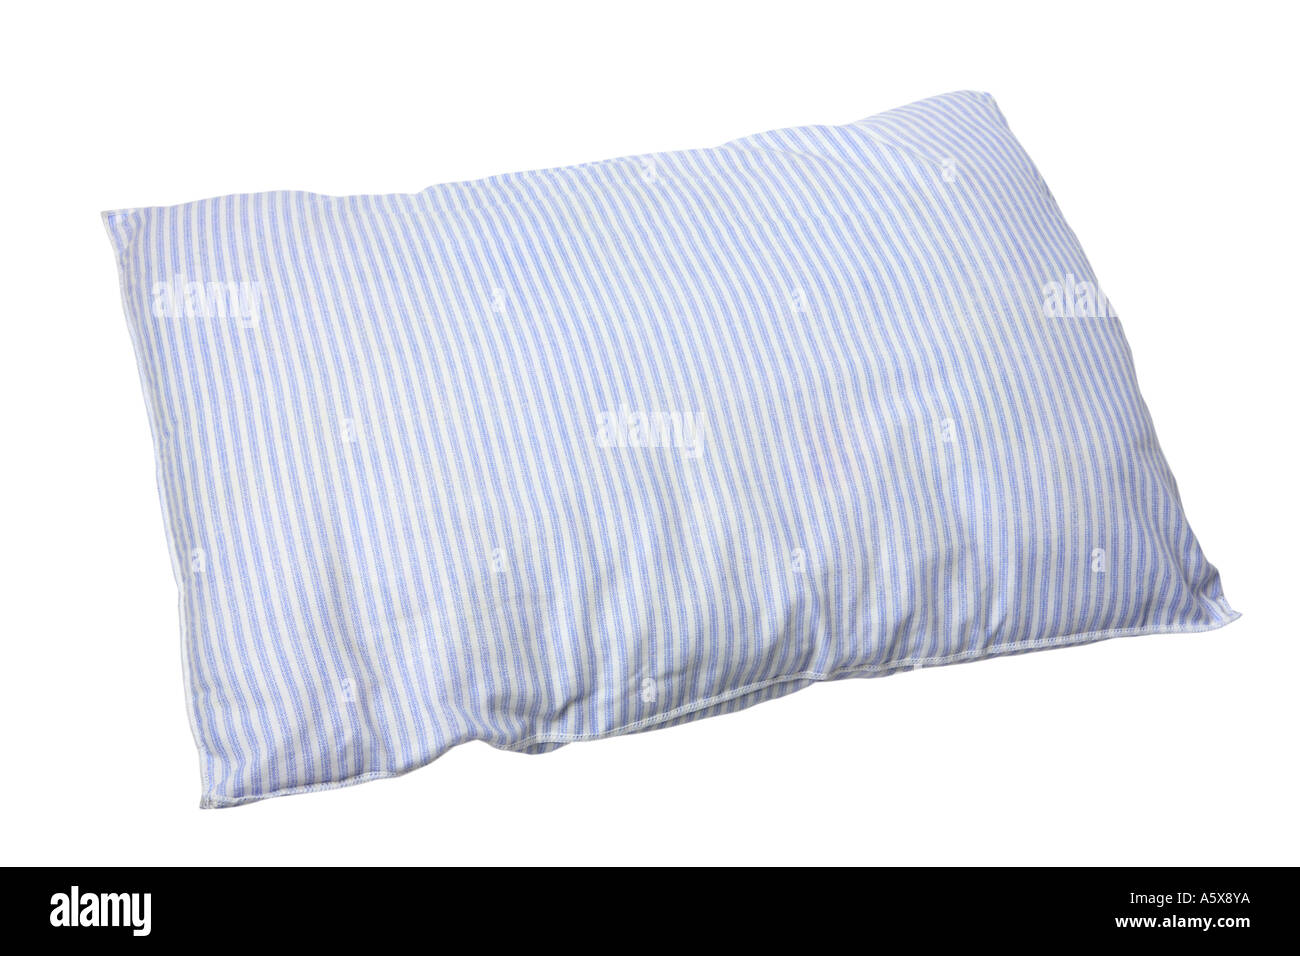 Pillow without pillowcase - Stock Image